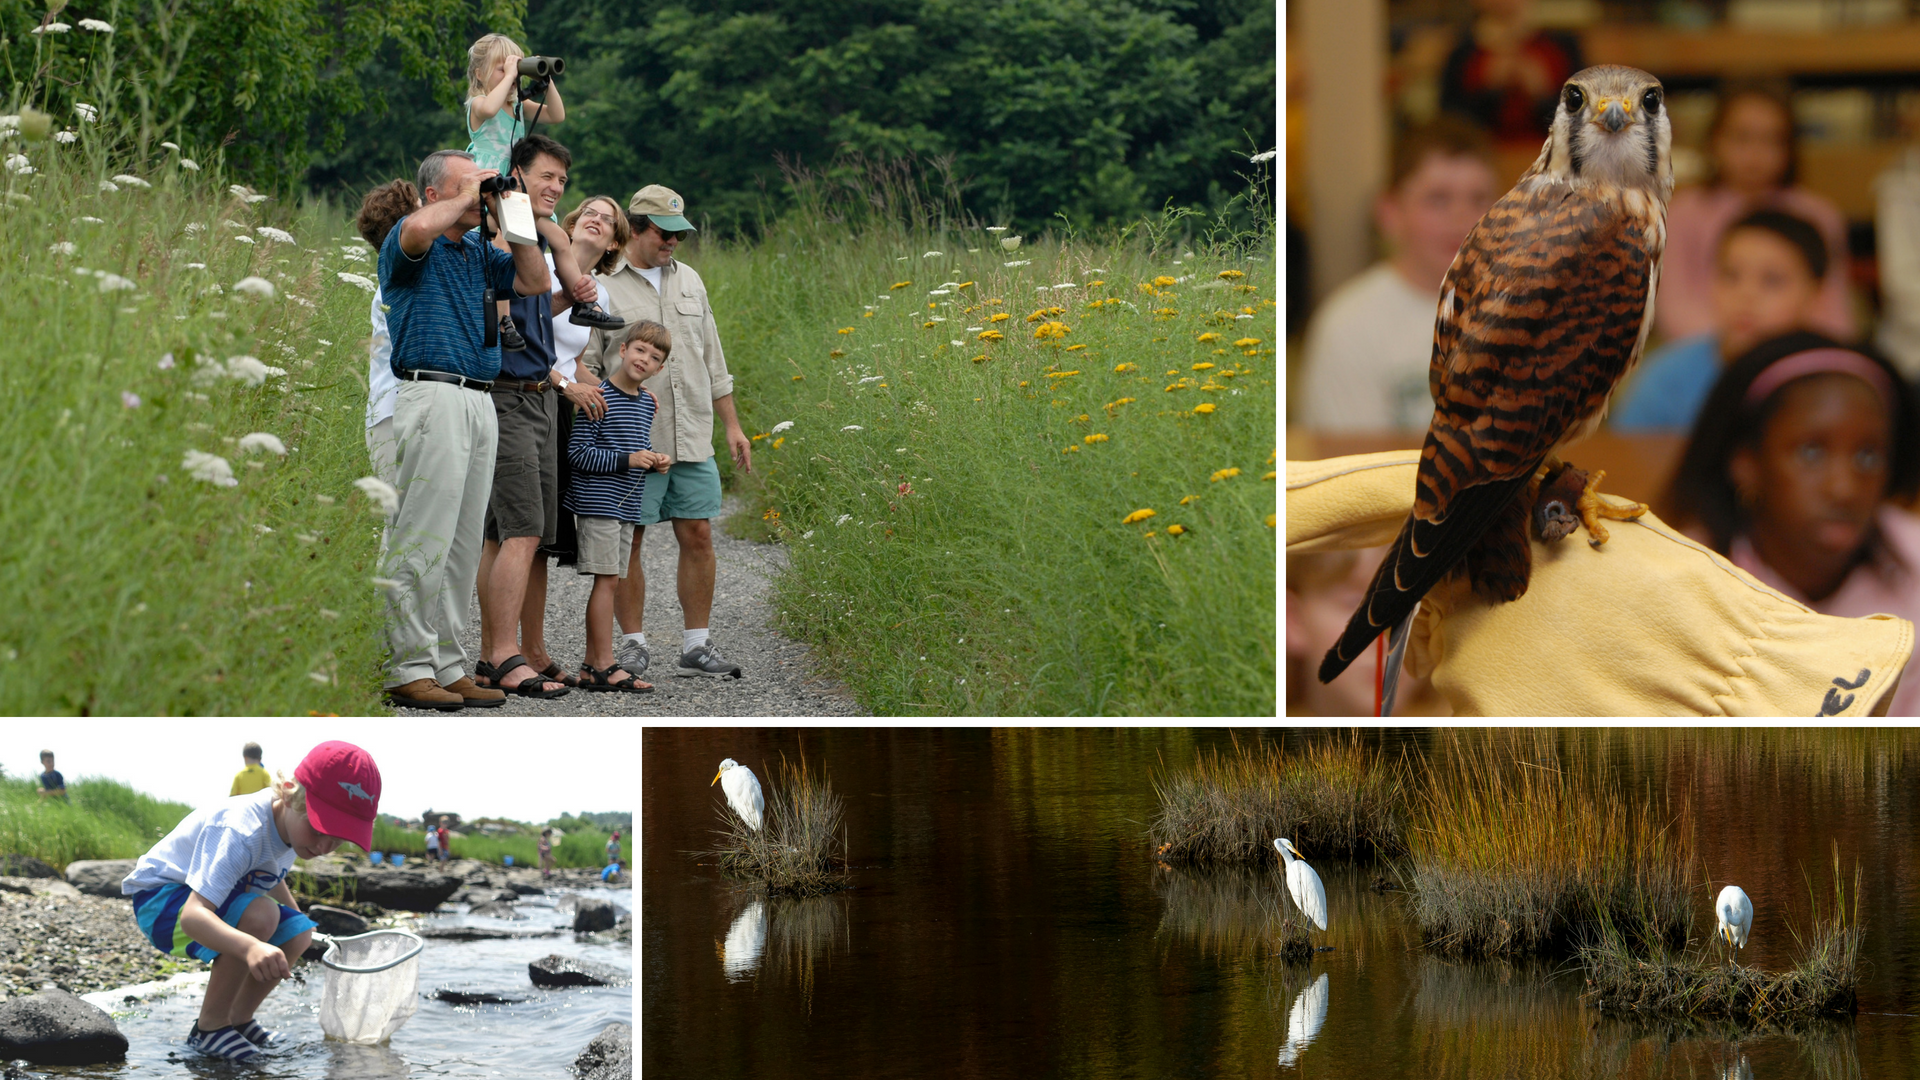 Audubon Society Rhode Island Membership: Great for Family | Nature programs | Birdwatching | Protection of environment